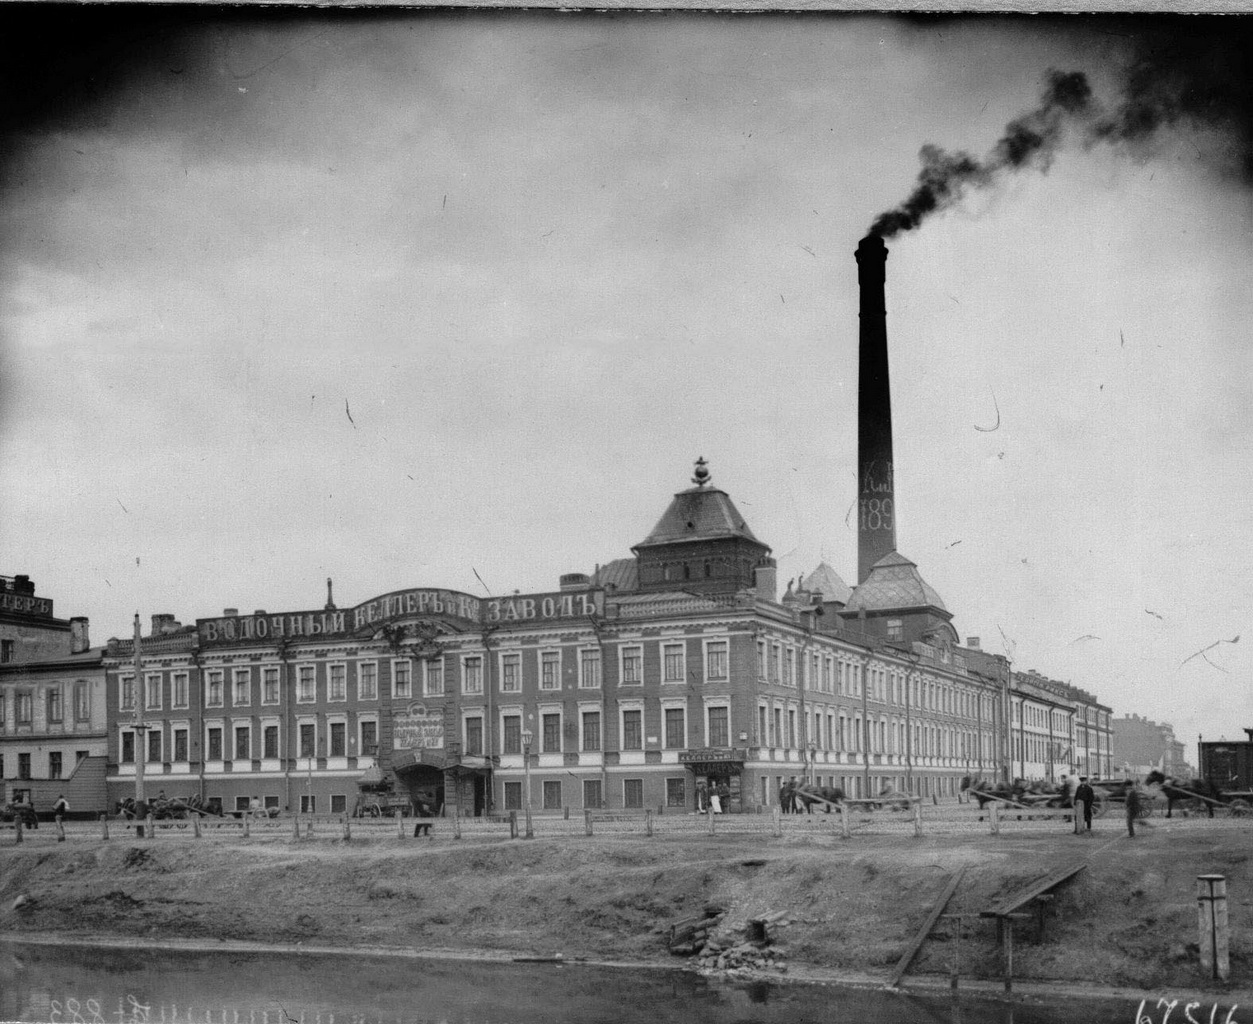 Welcome to the vodka factory of the company Keller & K°, founded by a Russian citizen with German roots. It opened in 1863 at the corner at what is today the Obvodny Canal Embankment and Zaozernaya Street in St. Petersburg.